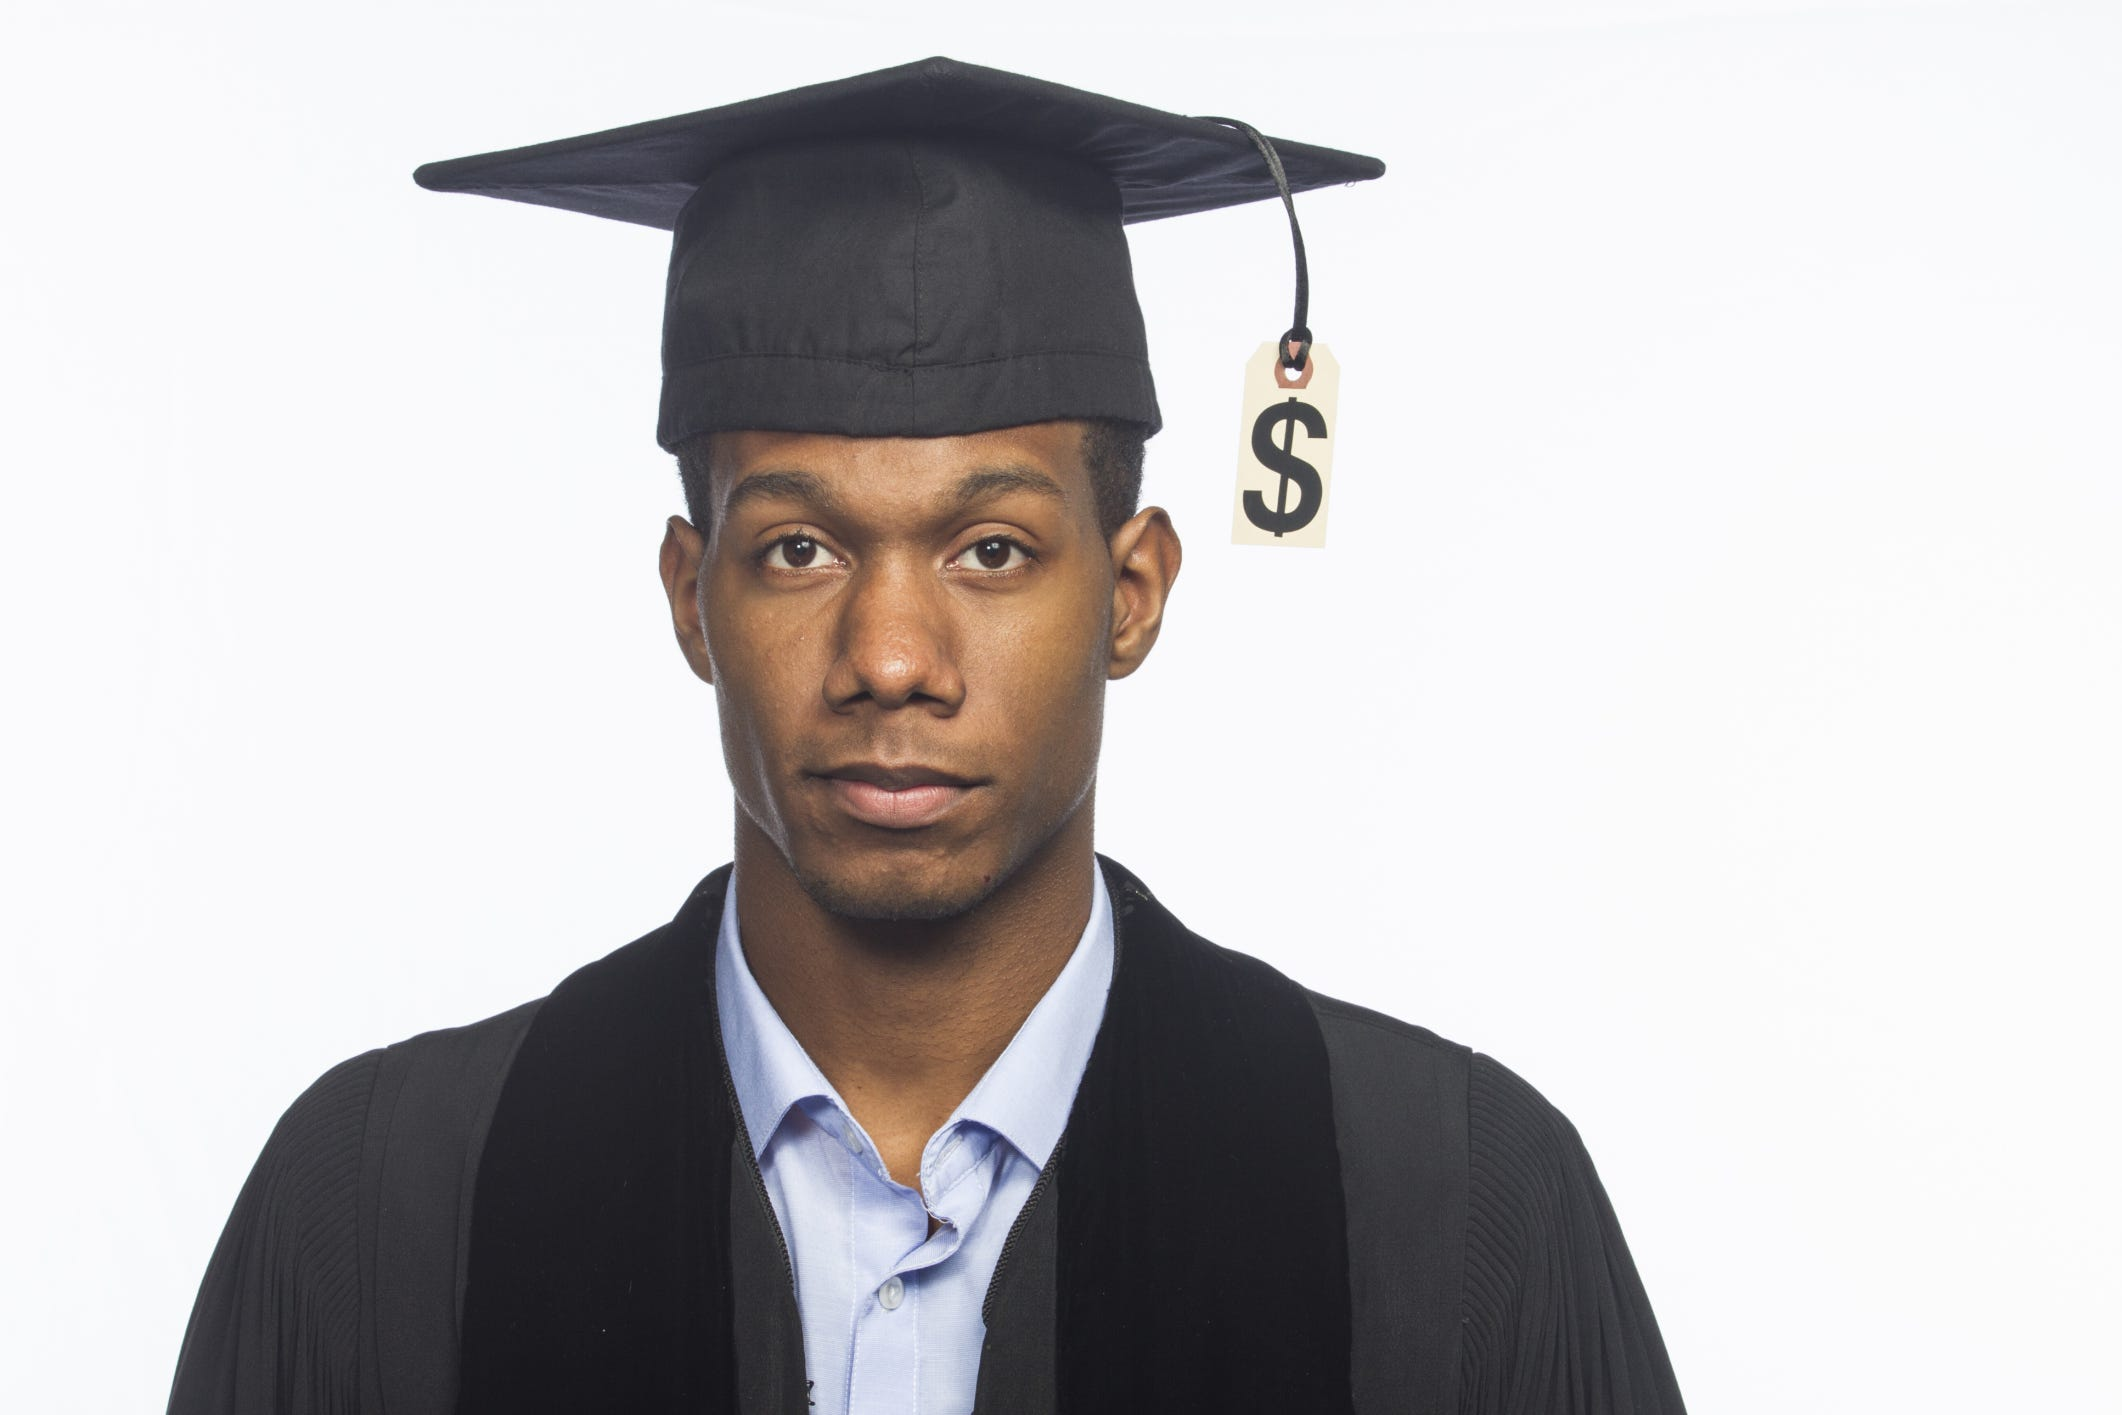 Debt forcing some to abandon career dreams